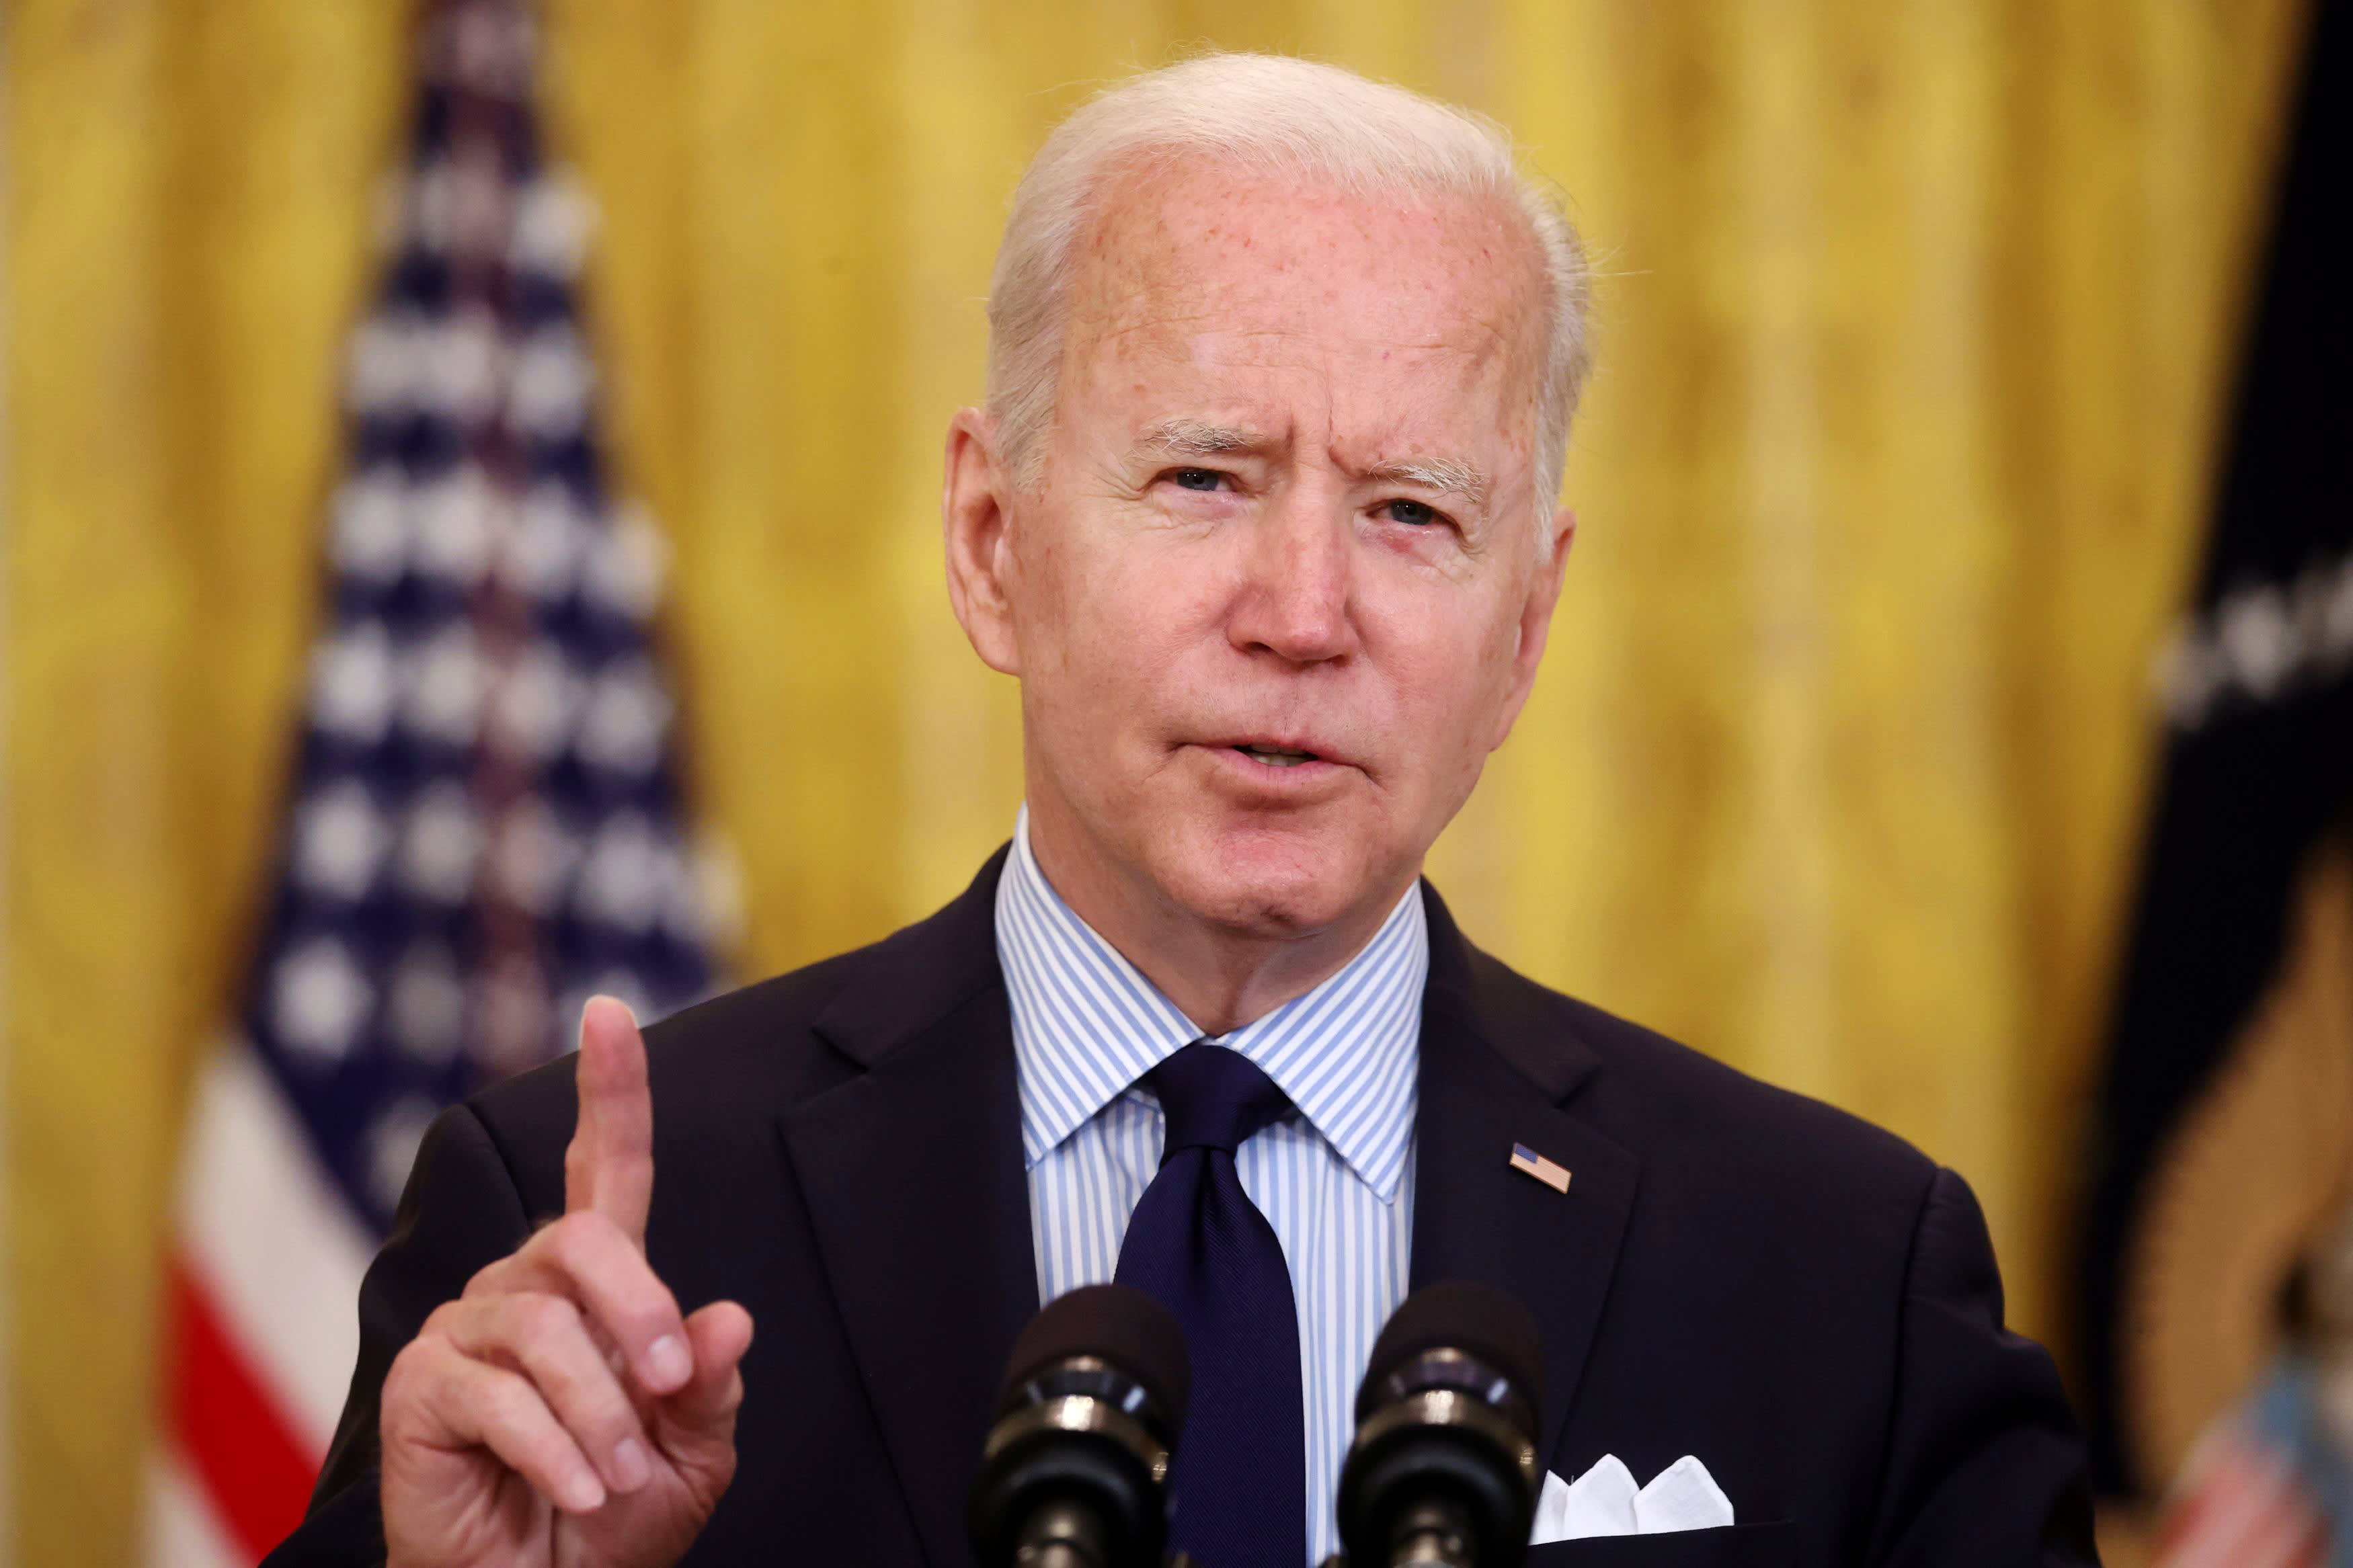 Biden puts anti-corruption at center of foreign policy with focus on crypto and cybersecurity – CNBC